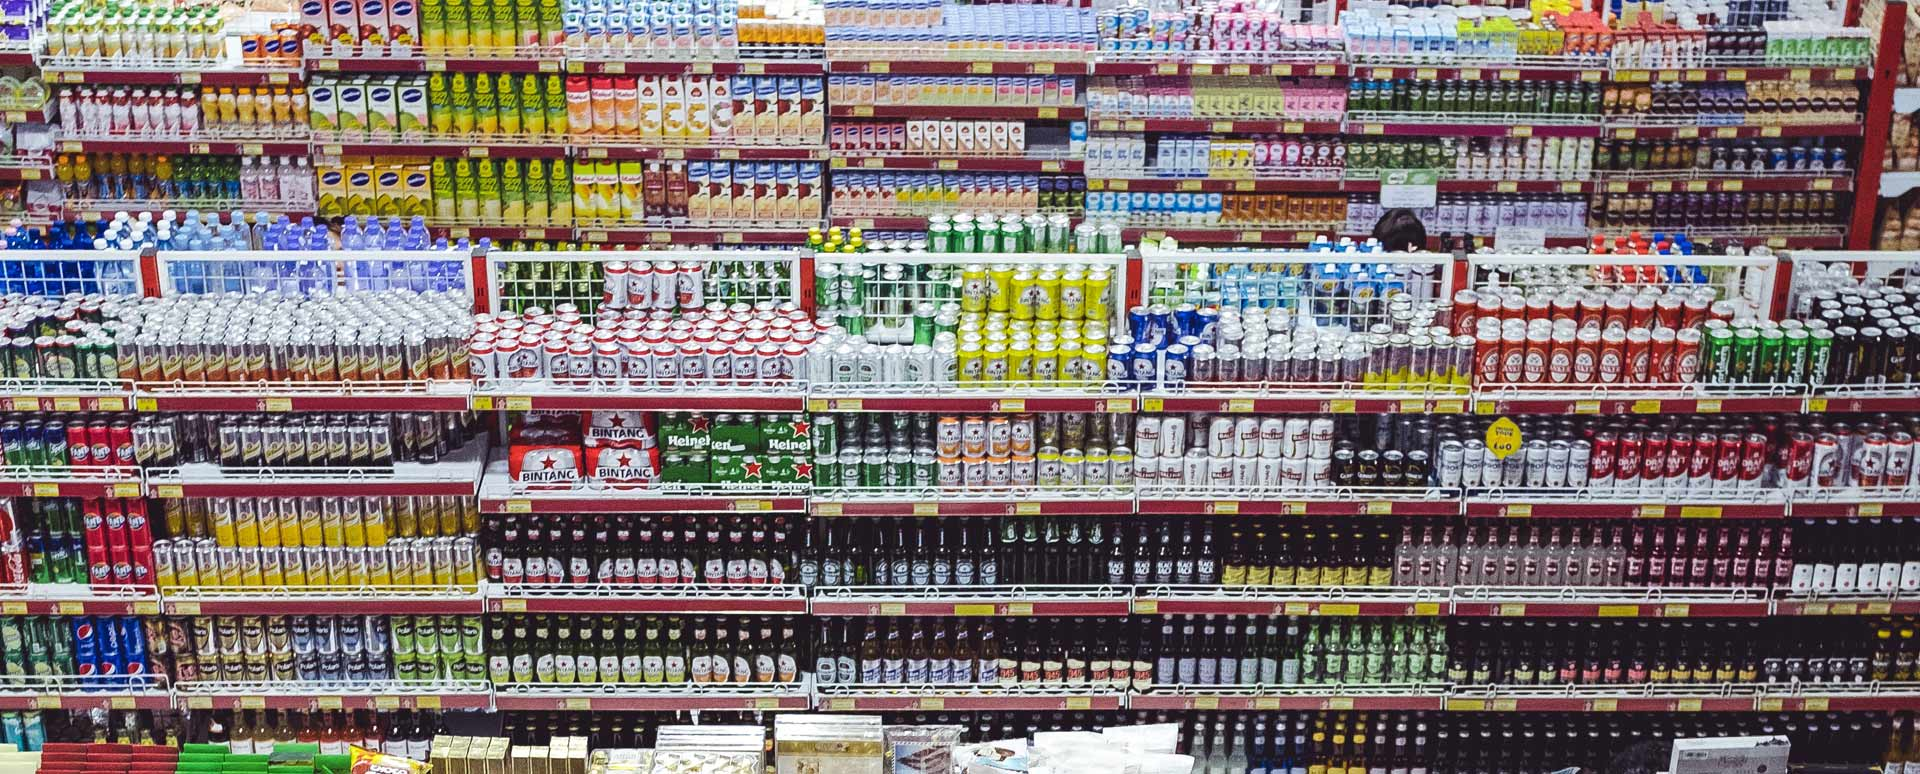 Shelves full of stock at a supermarket